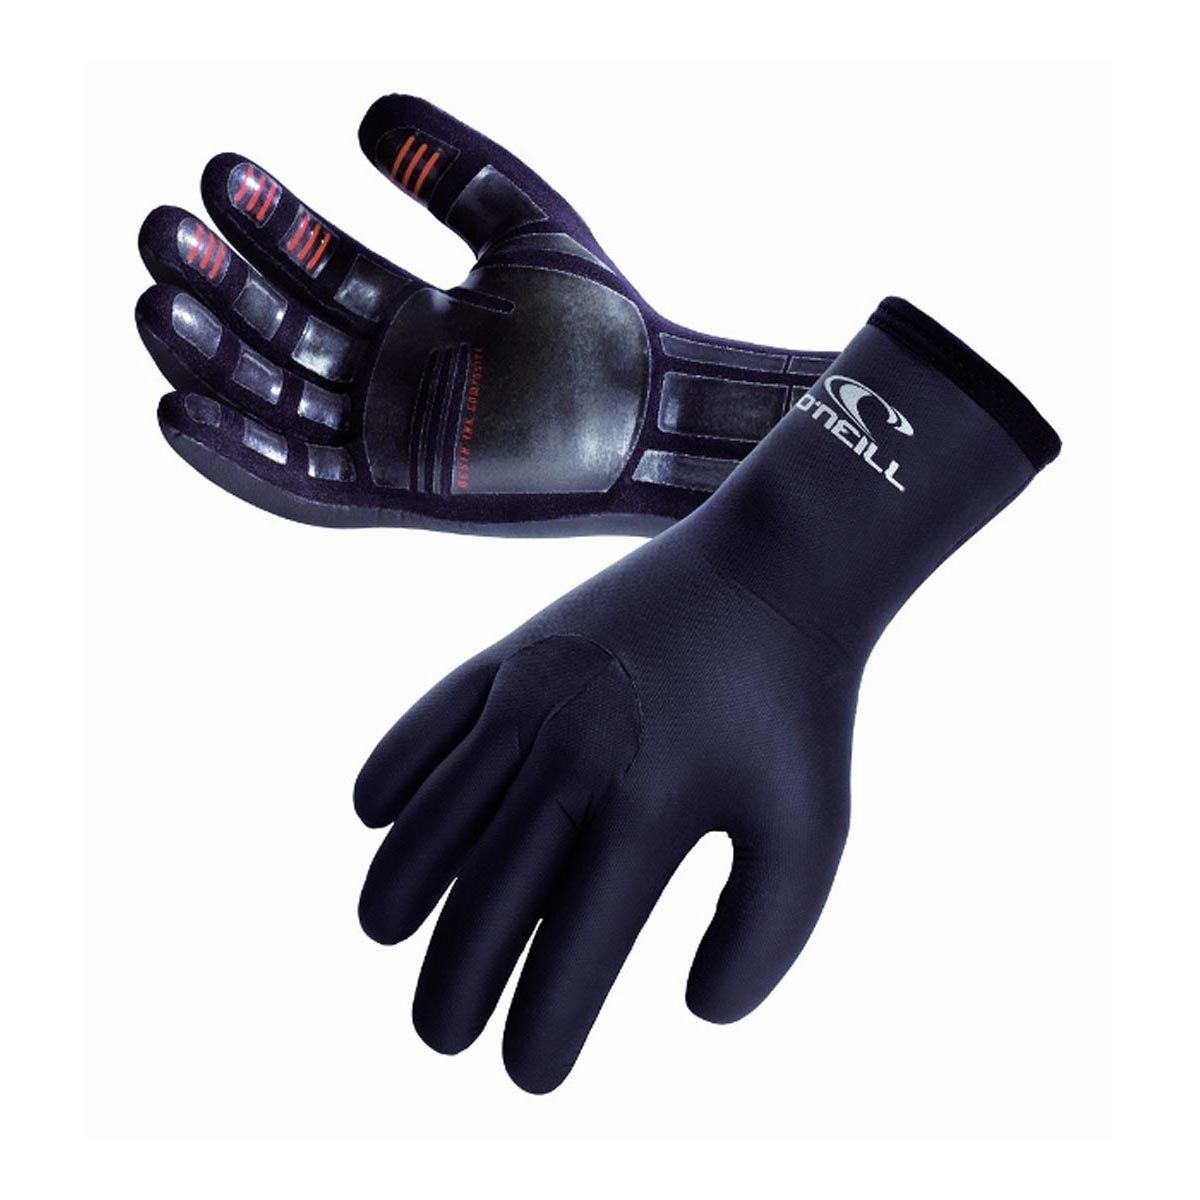 O'NEILL O'RIGINALS GLOVE 3MM